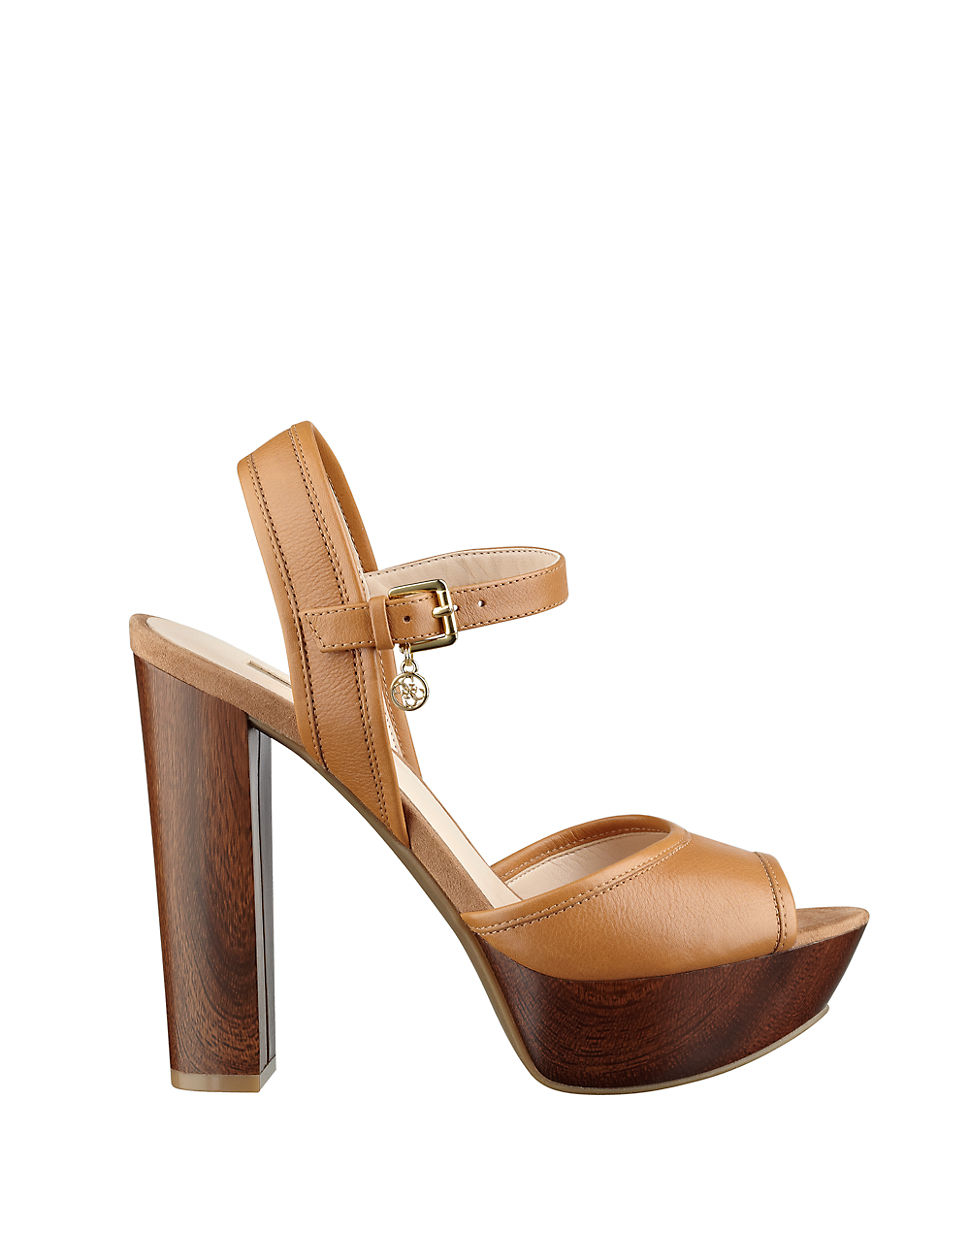 Guess Pursey Leather Peep Toe Platform Sandals In Brown Lyst